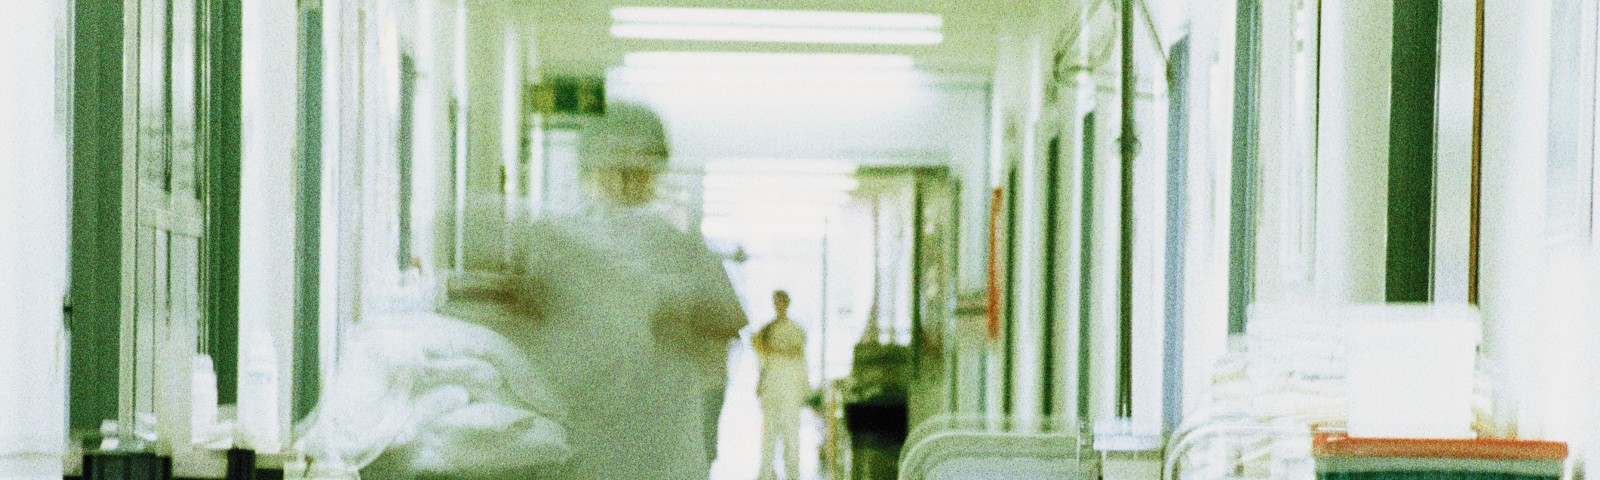 A blurry image of a hospital hallway.